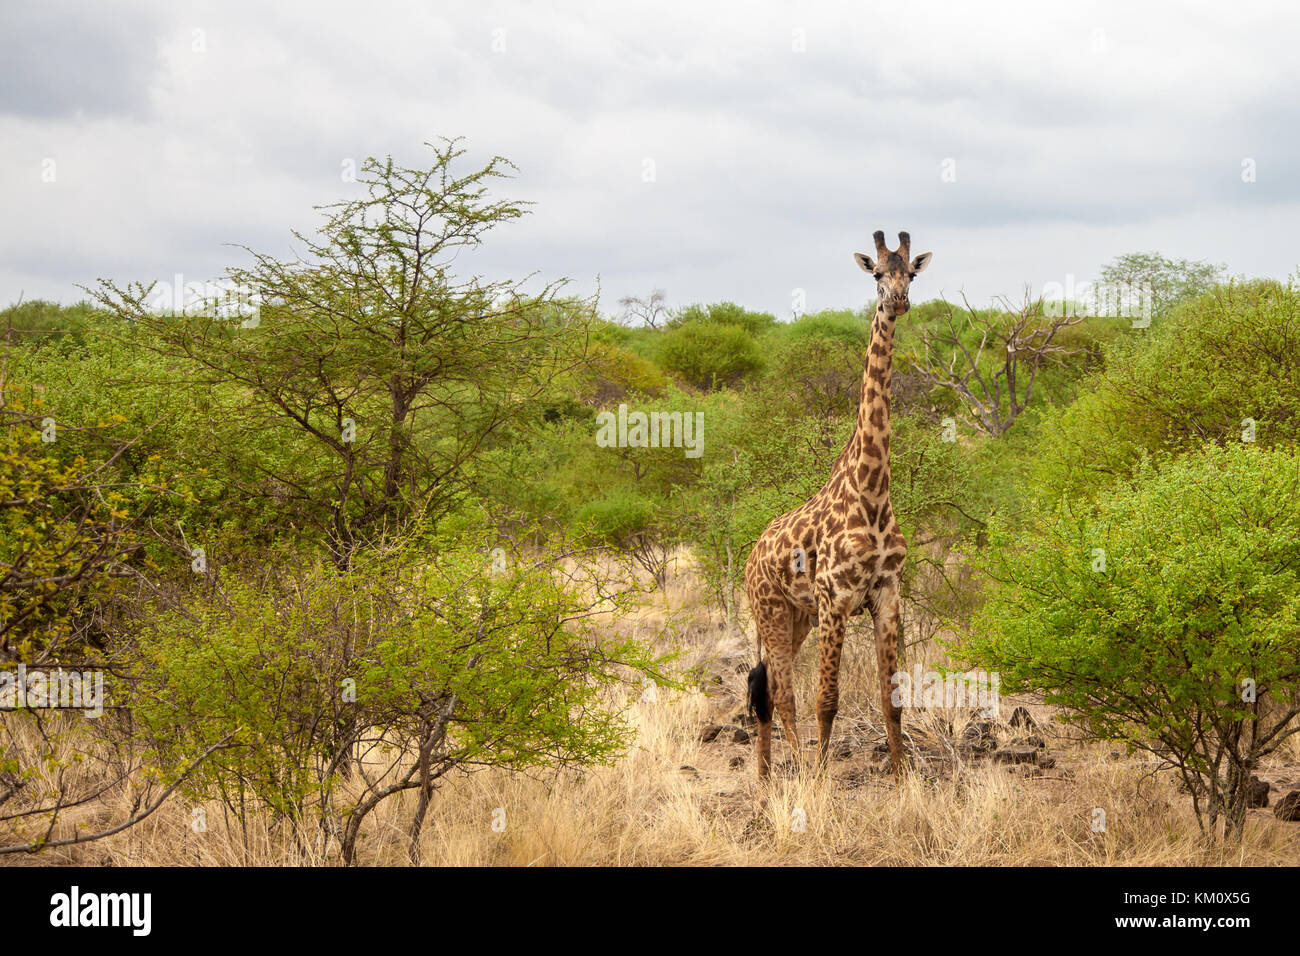 Game drive in Kenya, giraffe is watching and standing - Stock Image